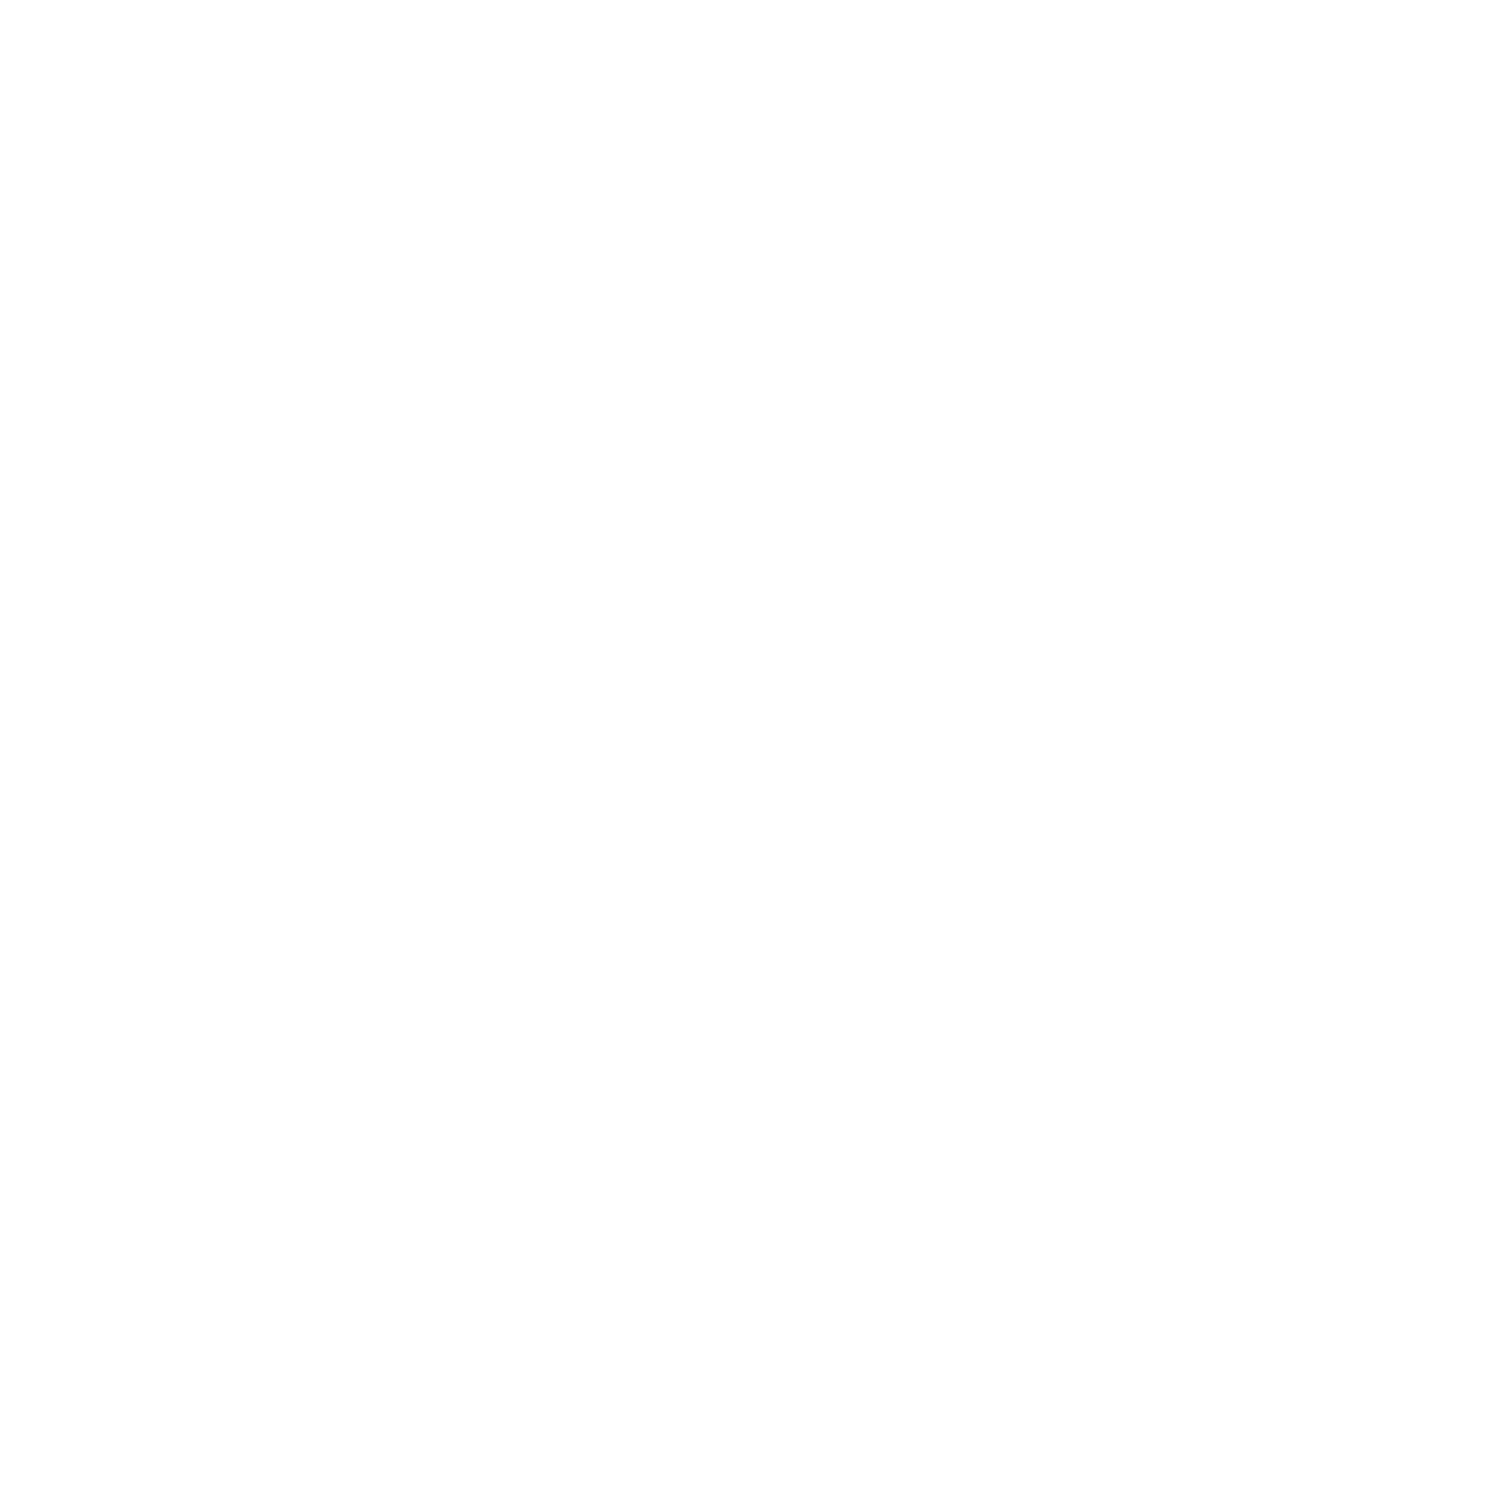 Bushwick Sounds